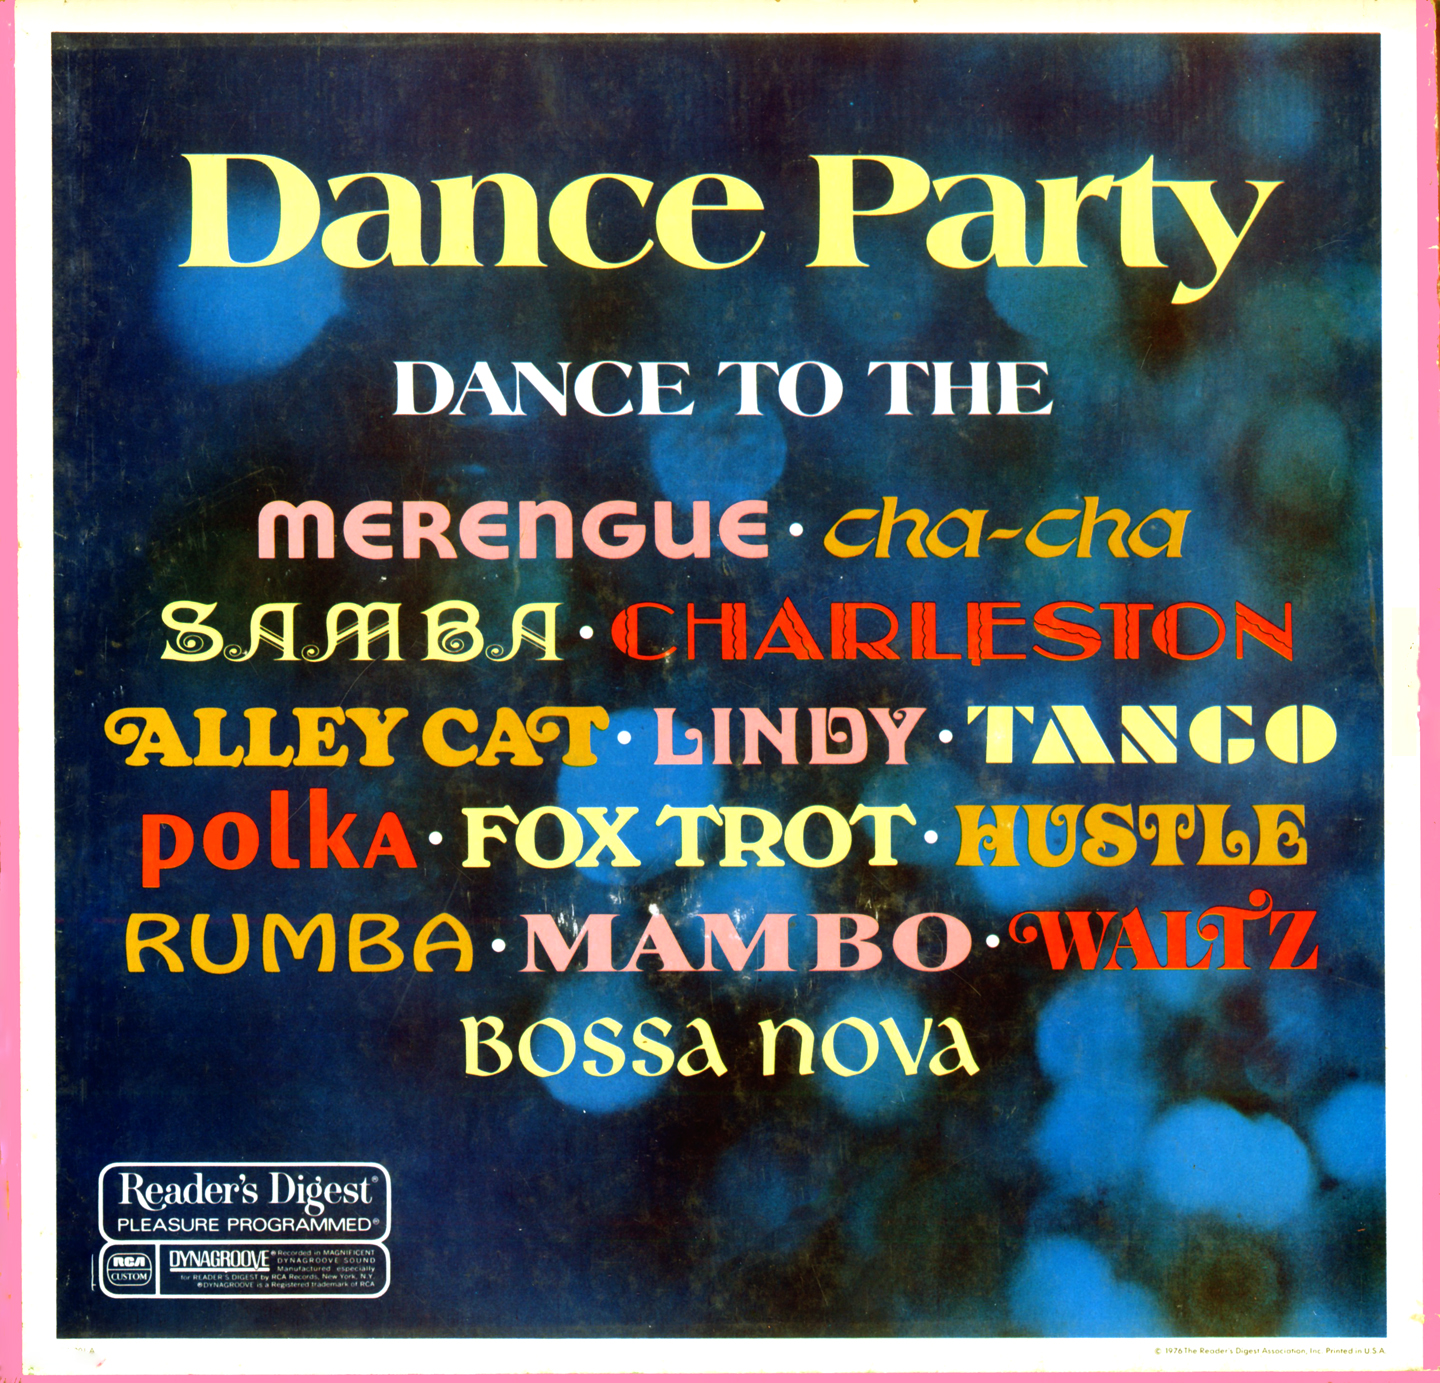 RDA201 - Dance Party on CD